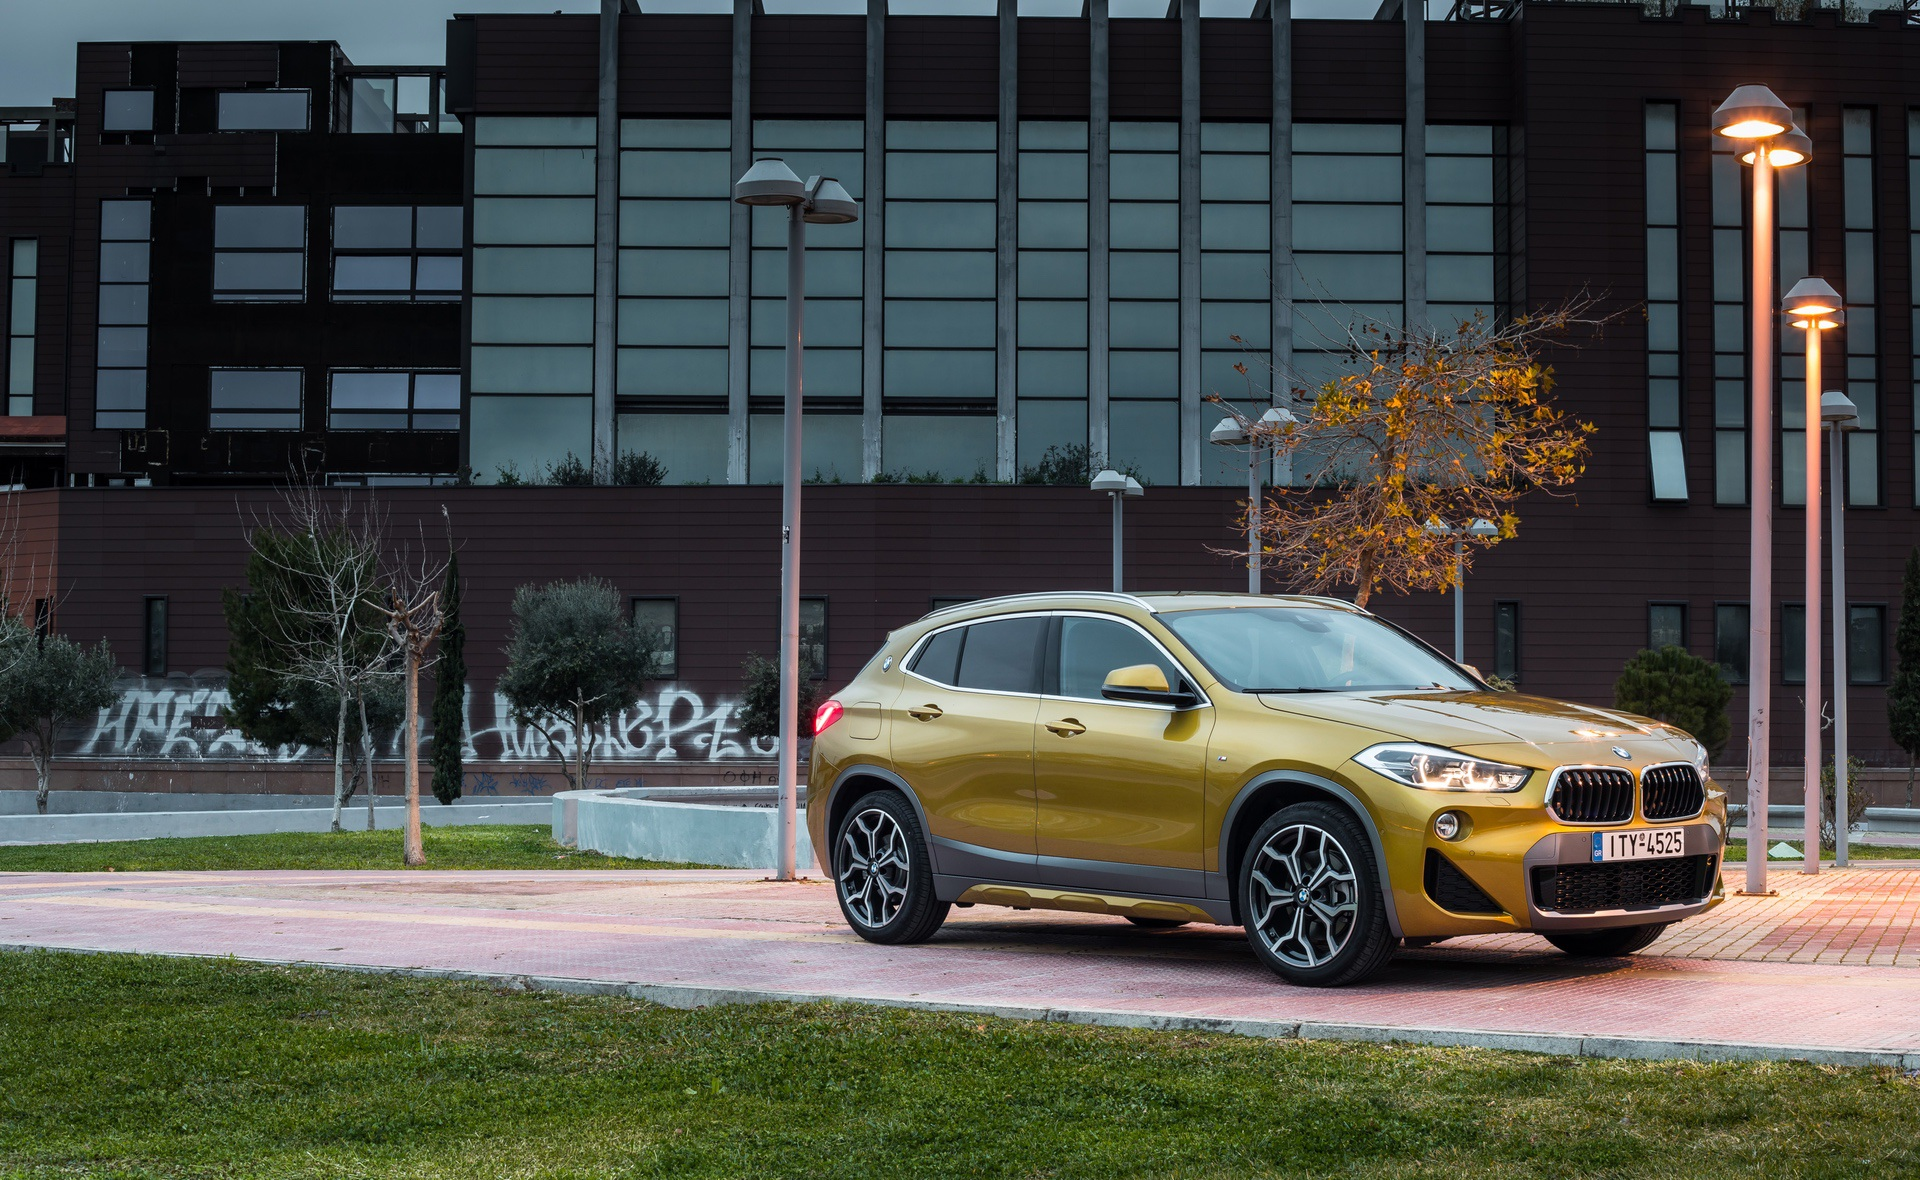 BMW_X2_Greek_presskit_0005